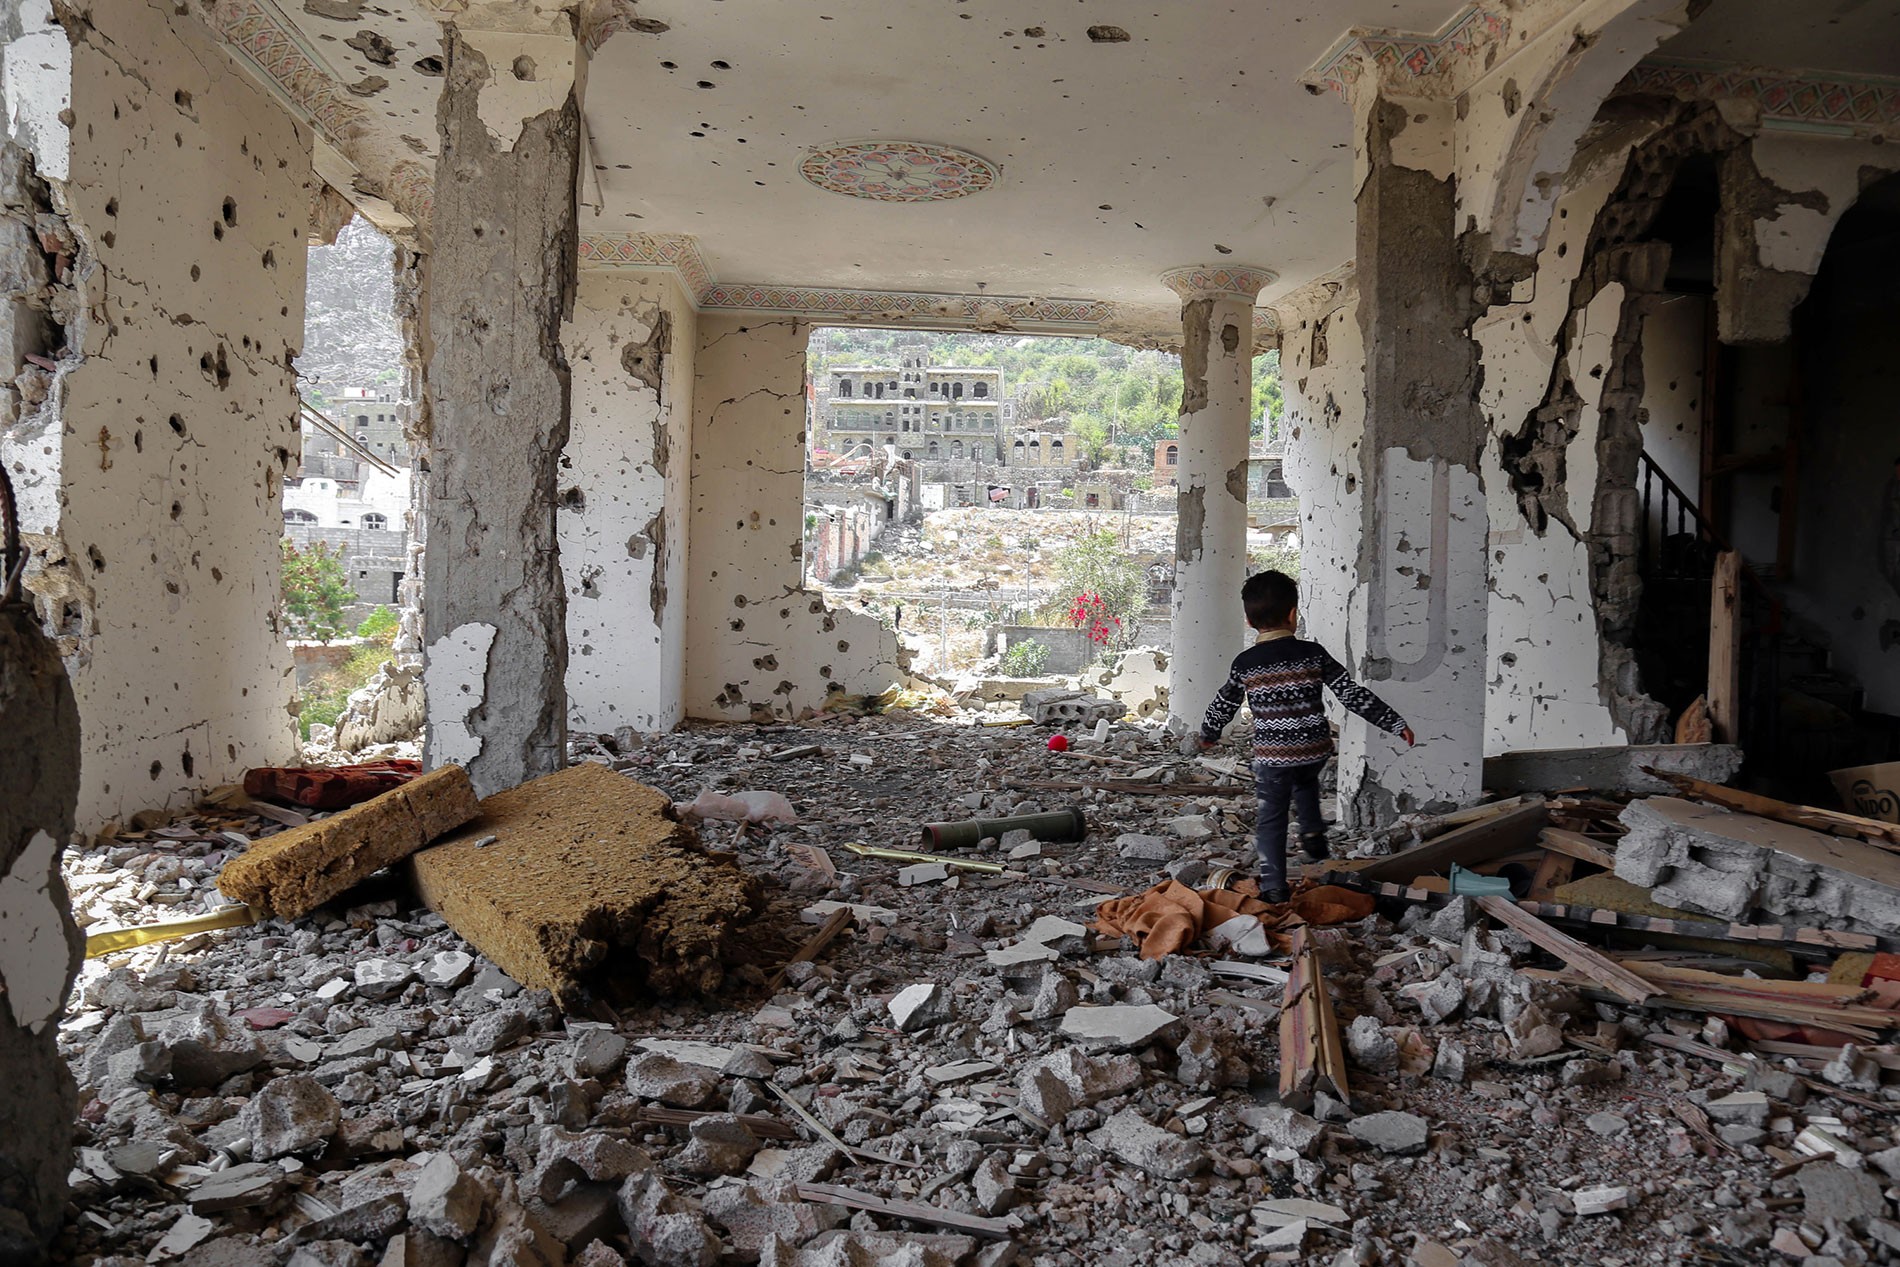 c_Ahmad-AlBasha_AFP__A-Yemeni-child-walking-in-the-rubble-of-a-building-that-was-destroyed-in-an-air-strike-in-the-southern-Yemeni-city-of-Taez.-March-2018.jpg